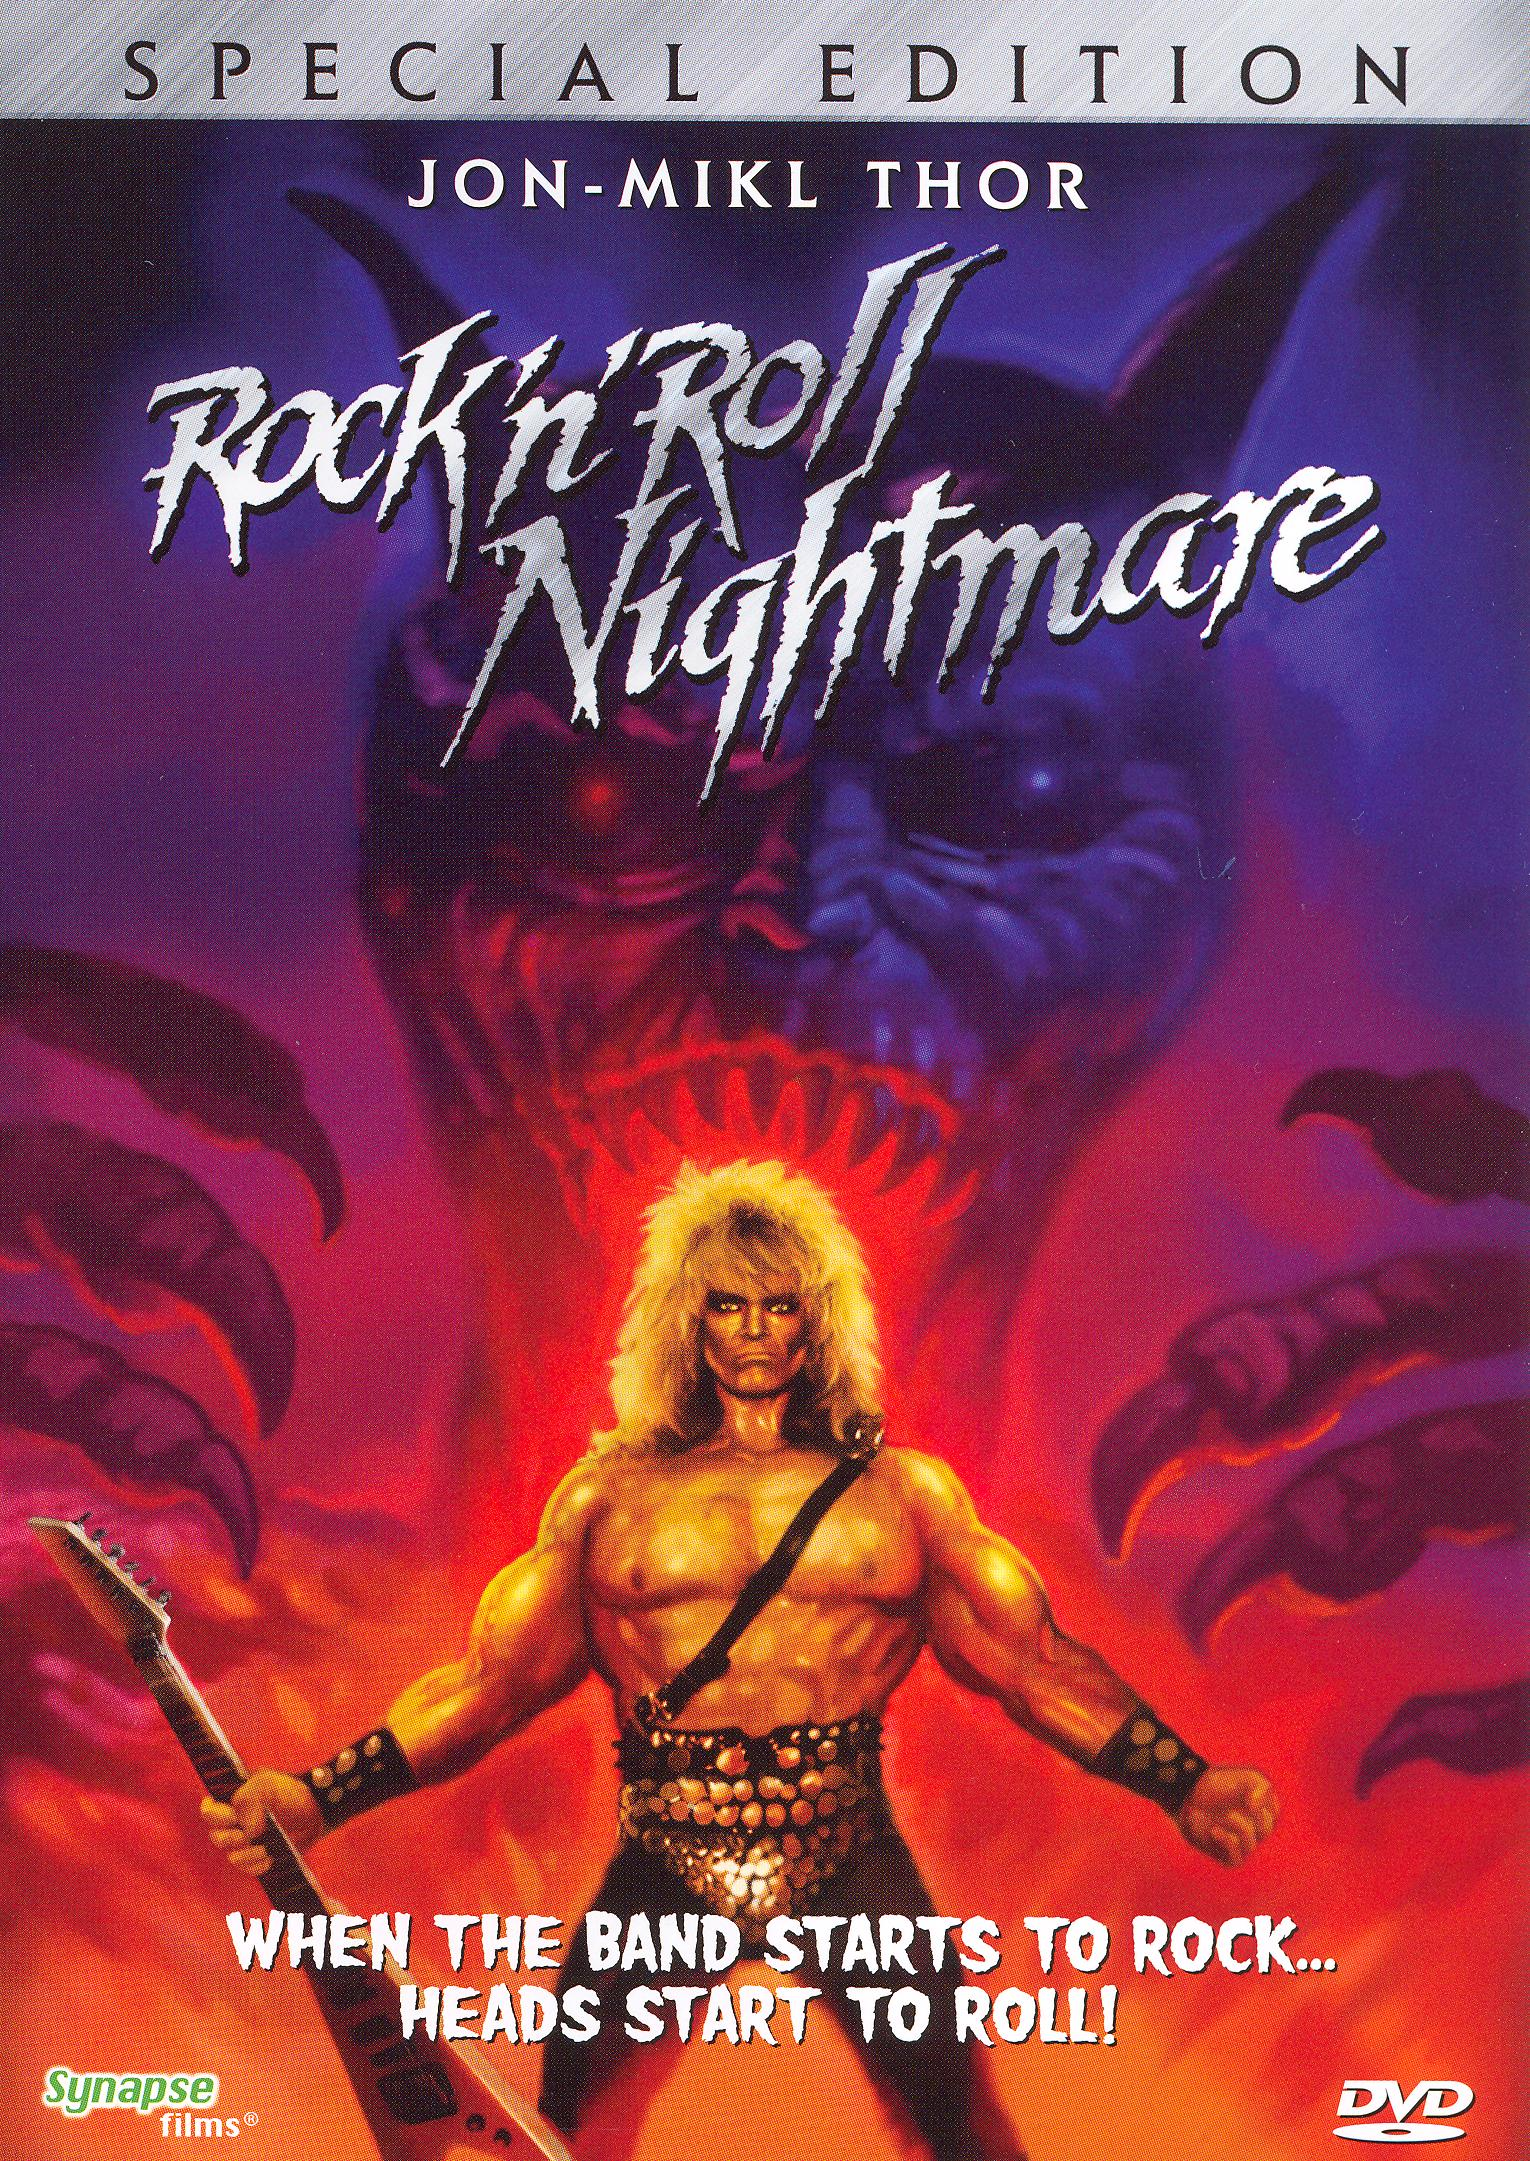 Rock 'n' Roll Nightmare